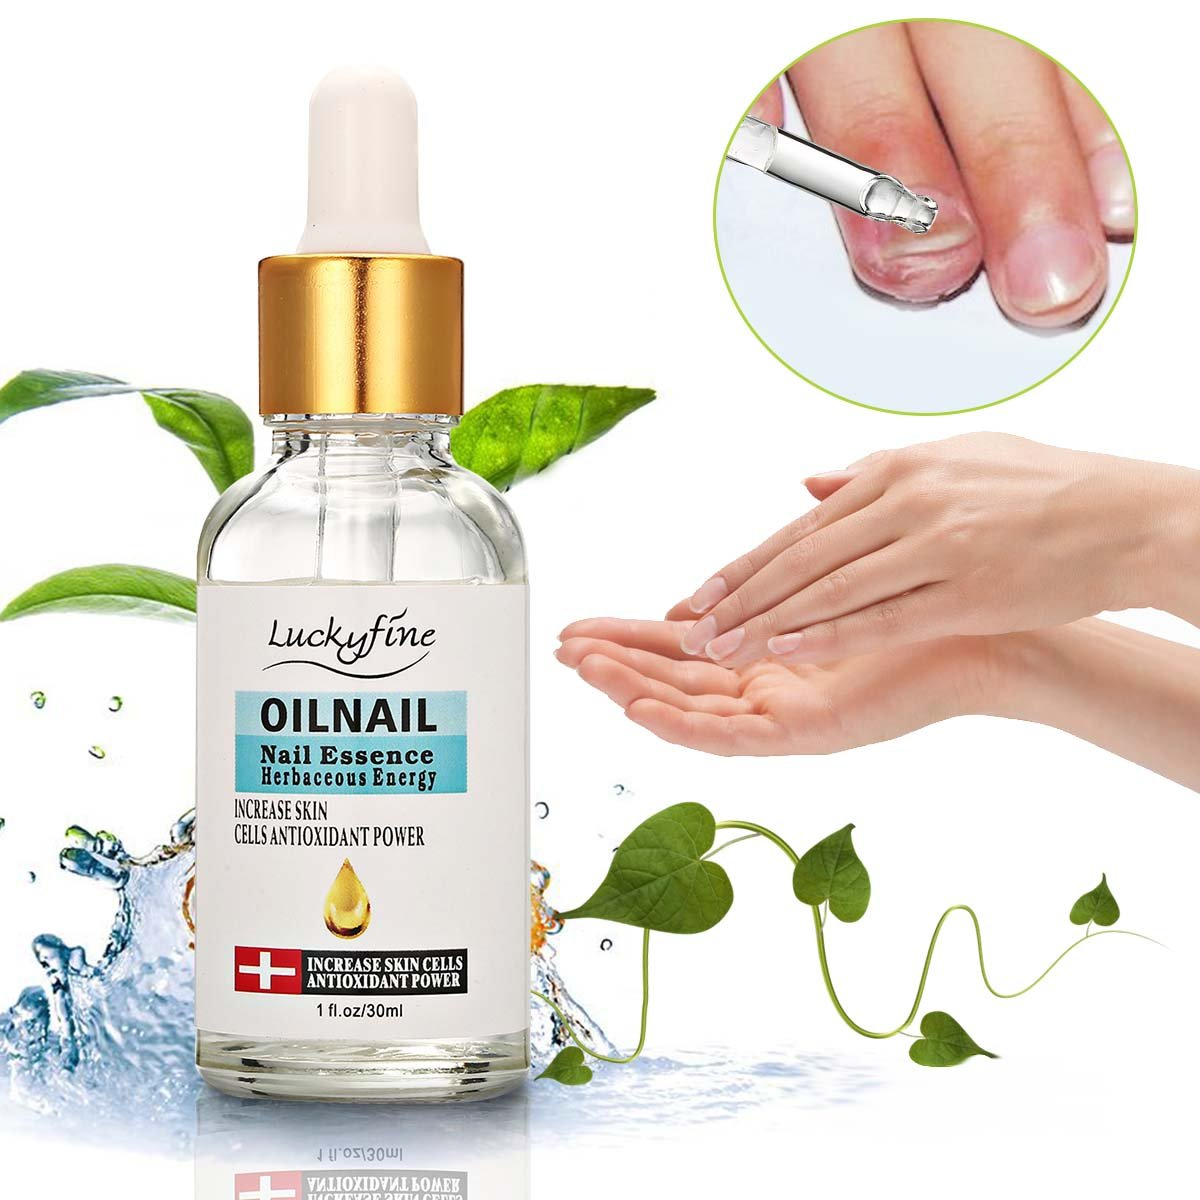 Nail Essence 30ml Luckyfine, Nail treatment, Protection for damaged Nail, Finger Toe Anti Fungal Nail, Smooth Shiny Nail, Nail Care Gift for Girls, Women